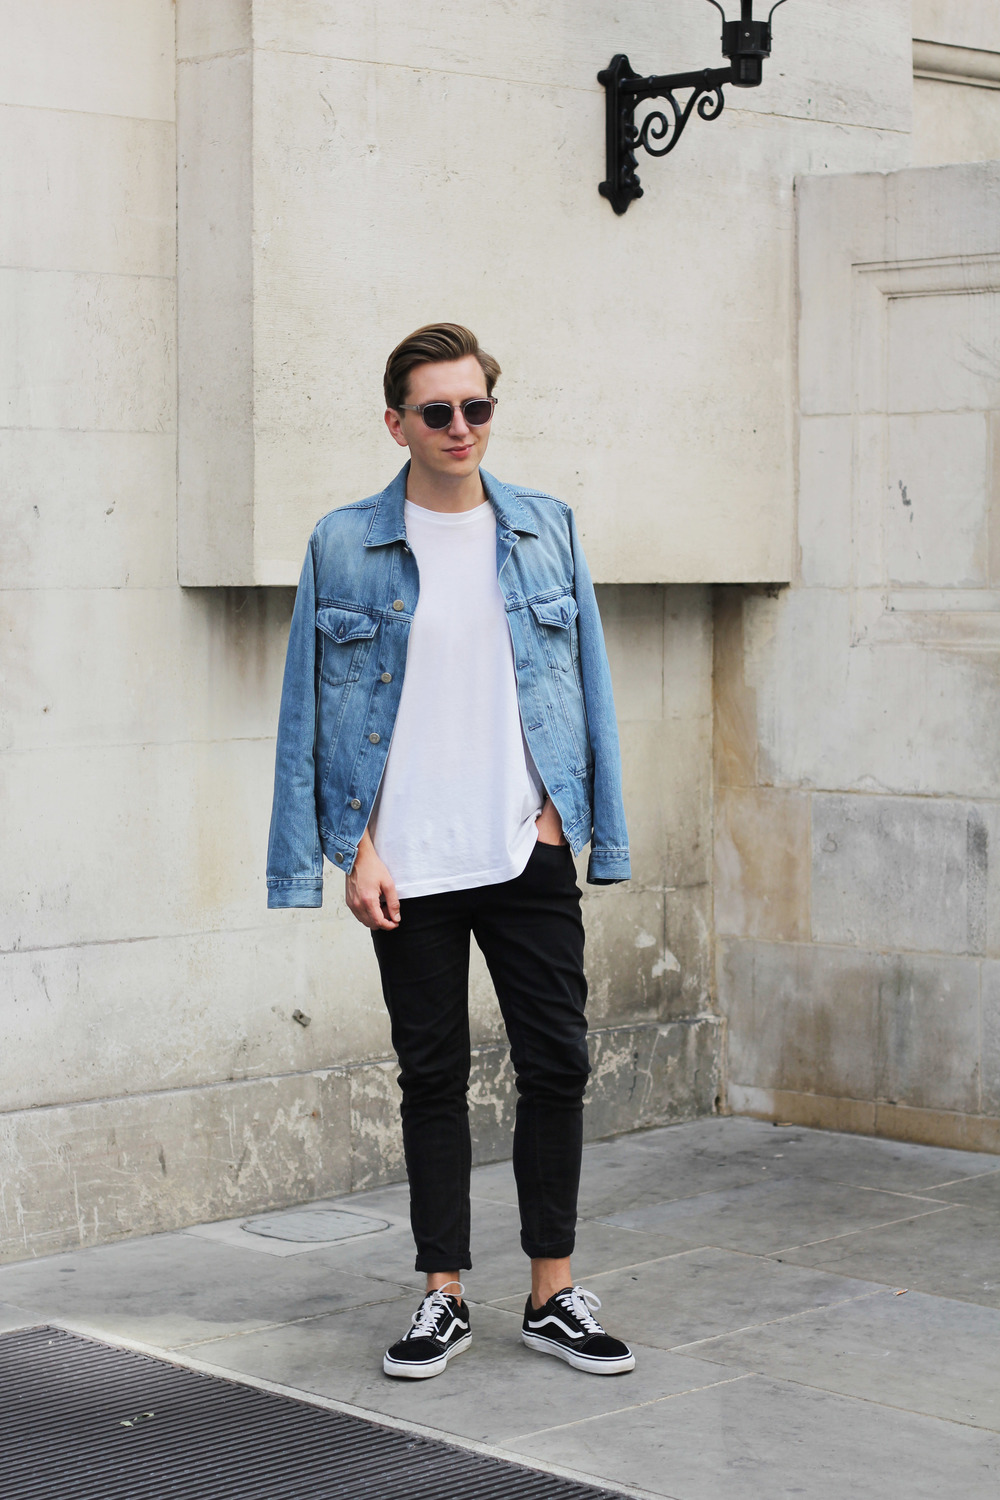 acne_studios_denim_jacket_ootd_menswear